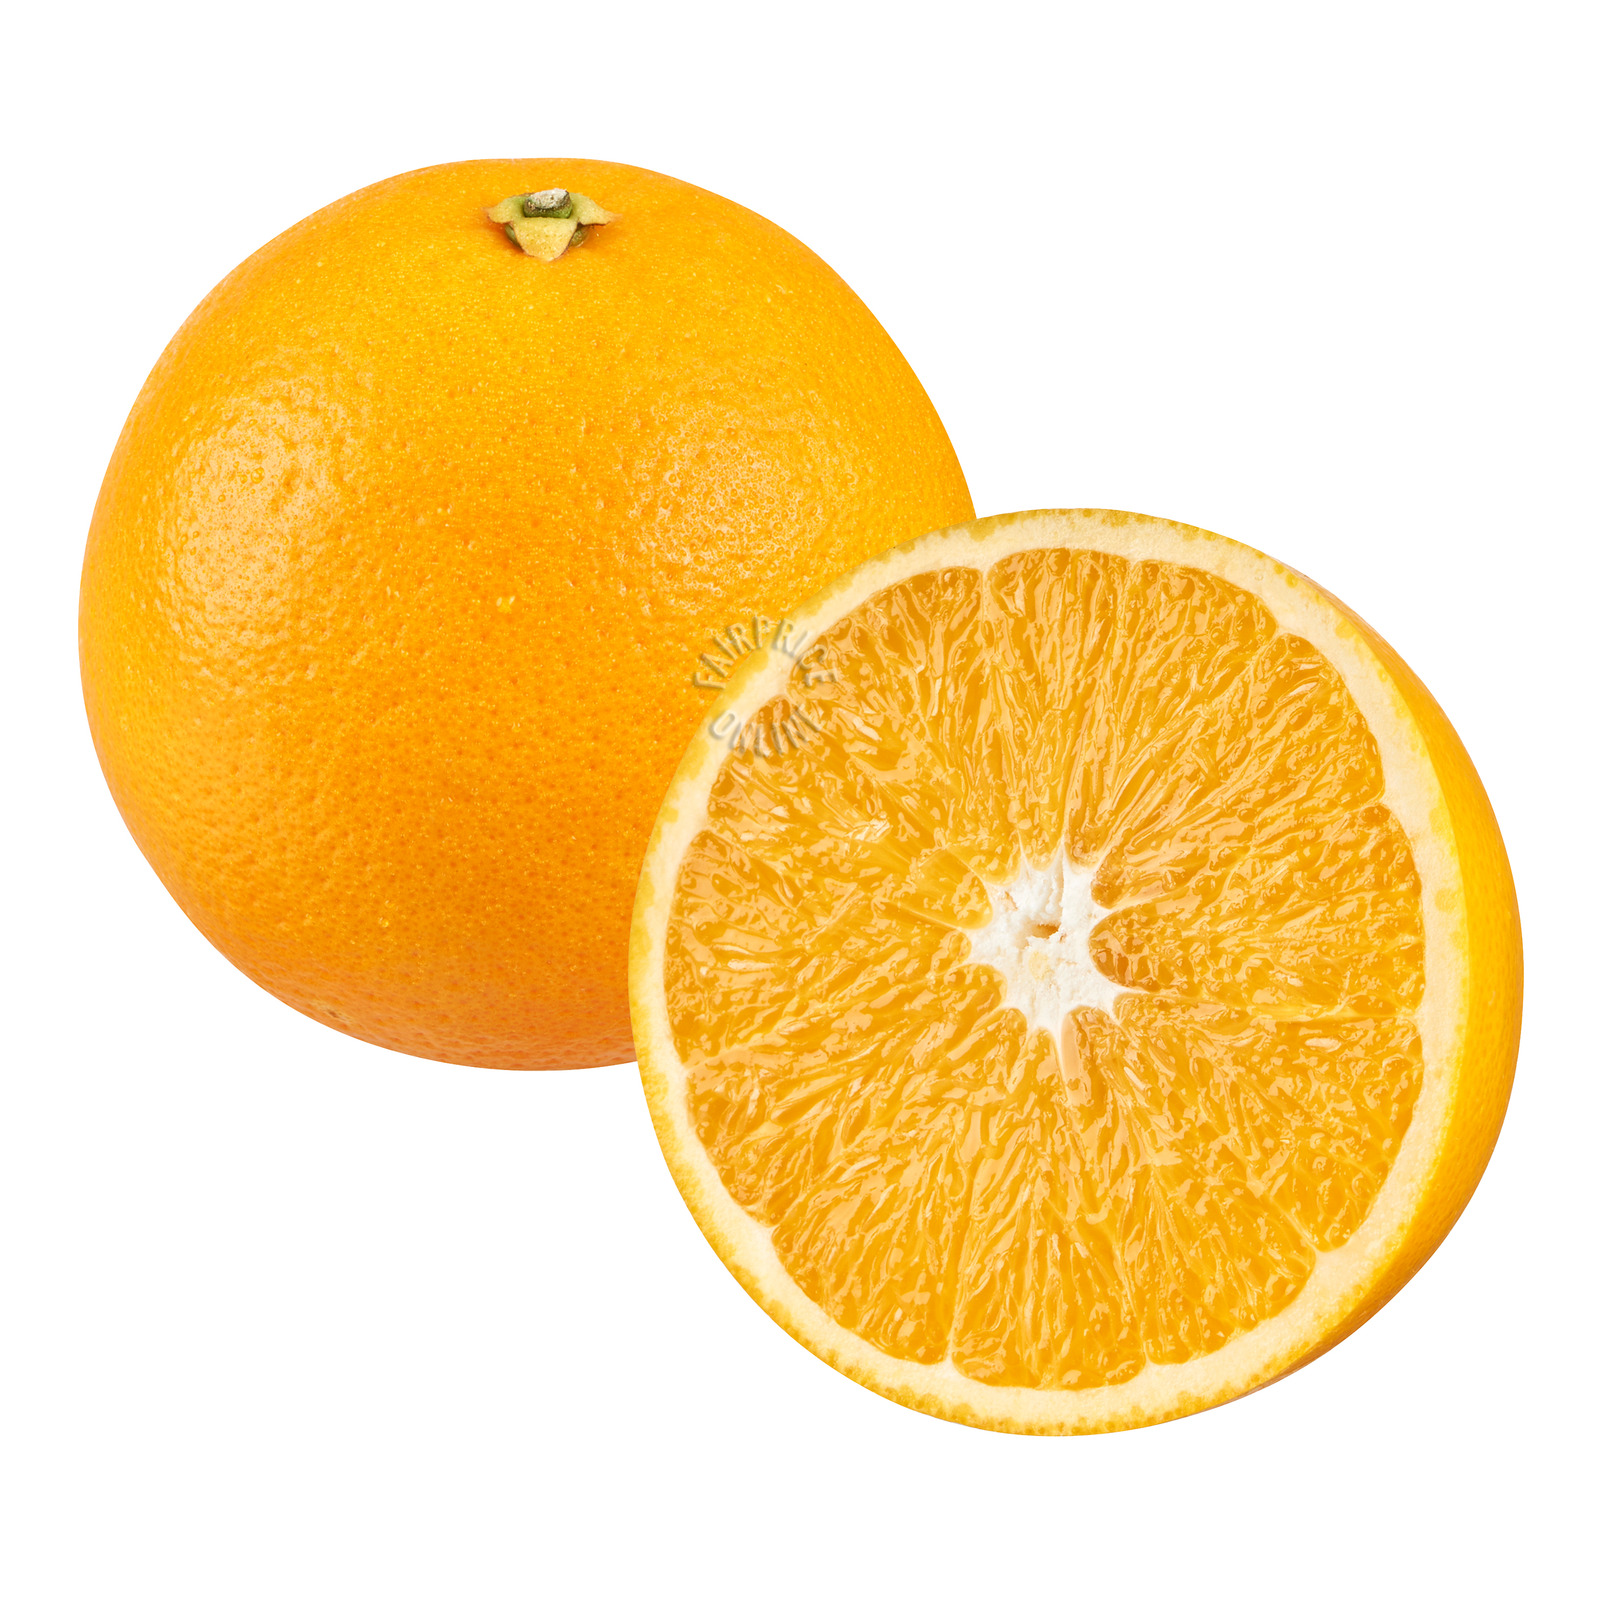 Sunkist USA Navel Oranges